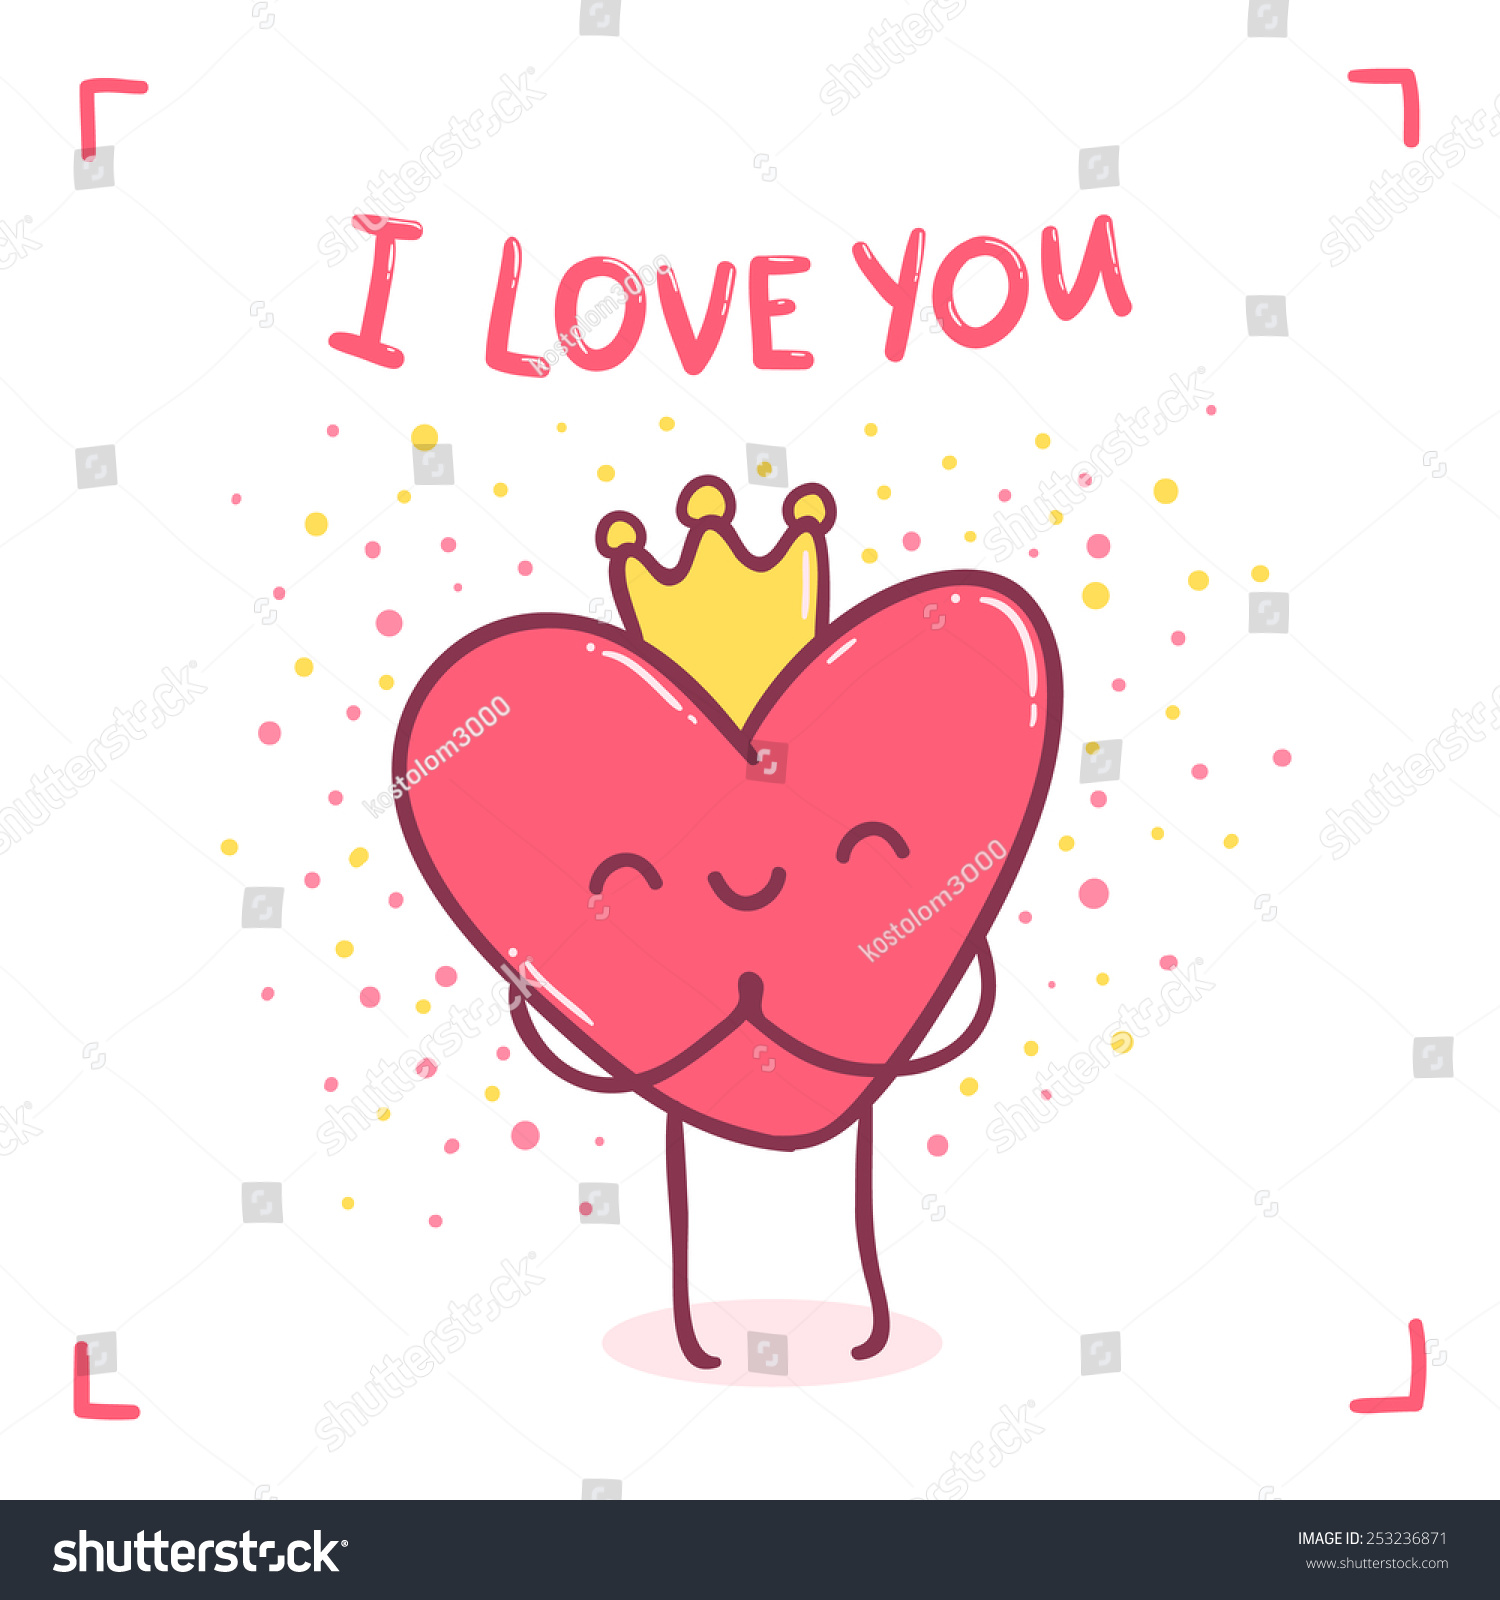 cute cartoon heart character love you stock vector 253236871